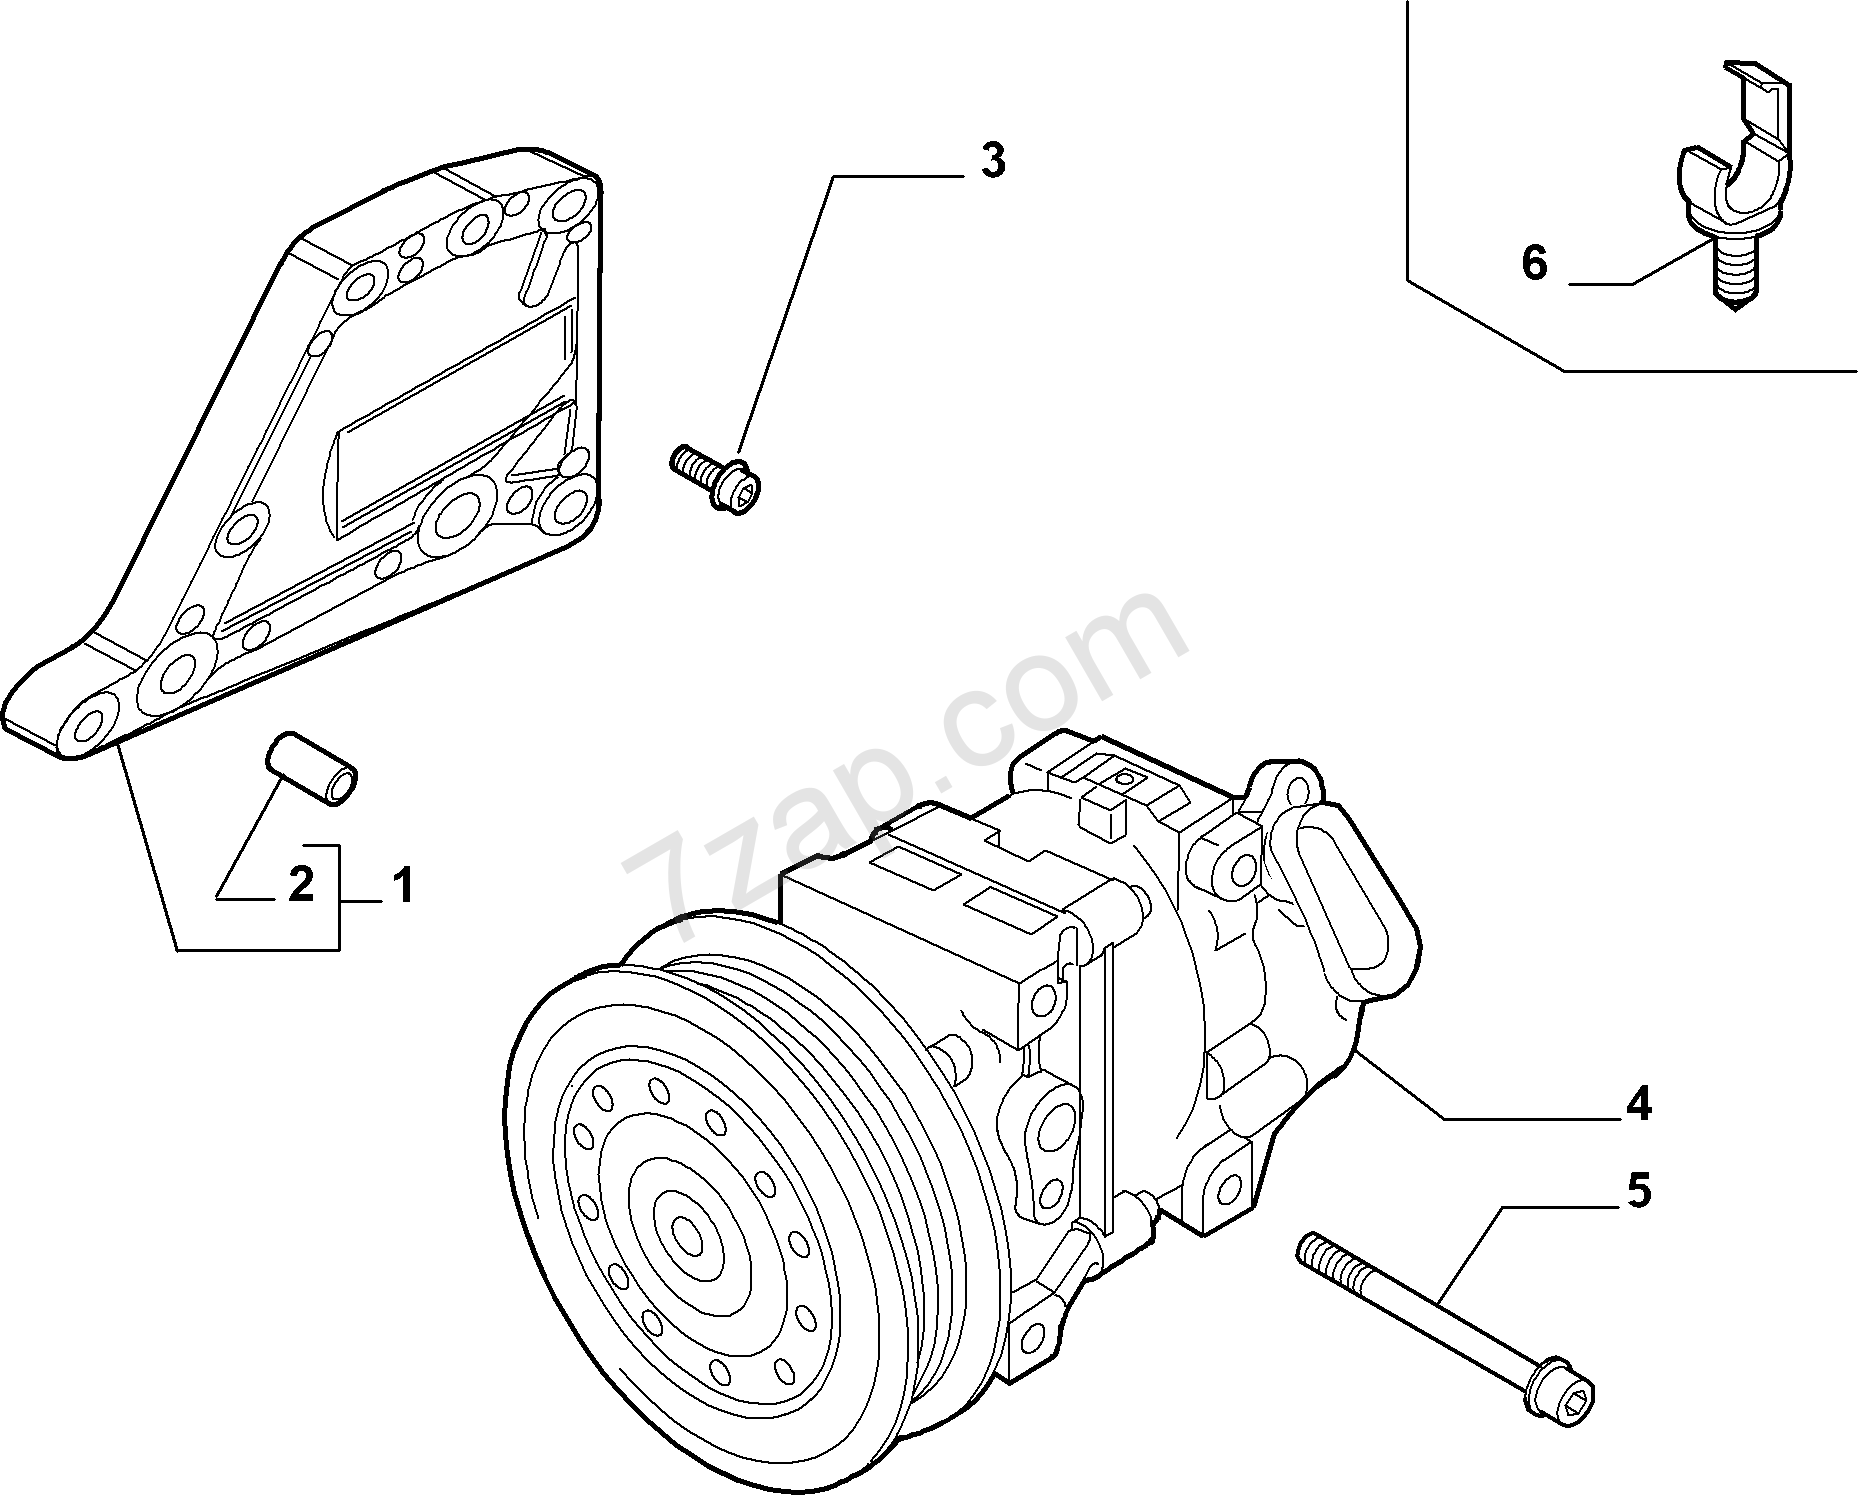 Ac Compressor Diagram Pro Air Conditioning Fiat Nuovo Fiorino Qubo 2007